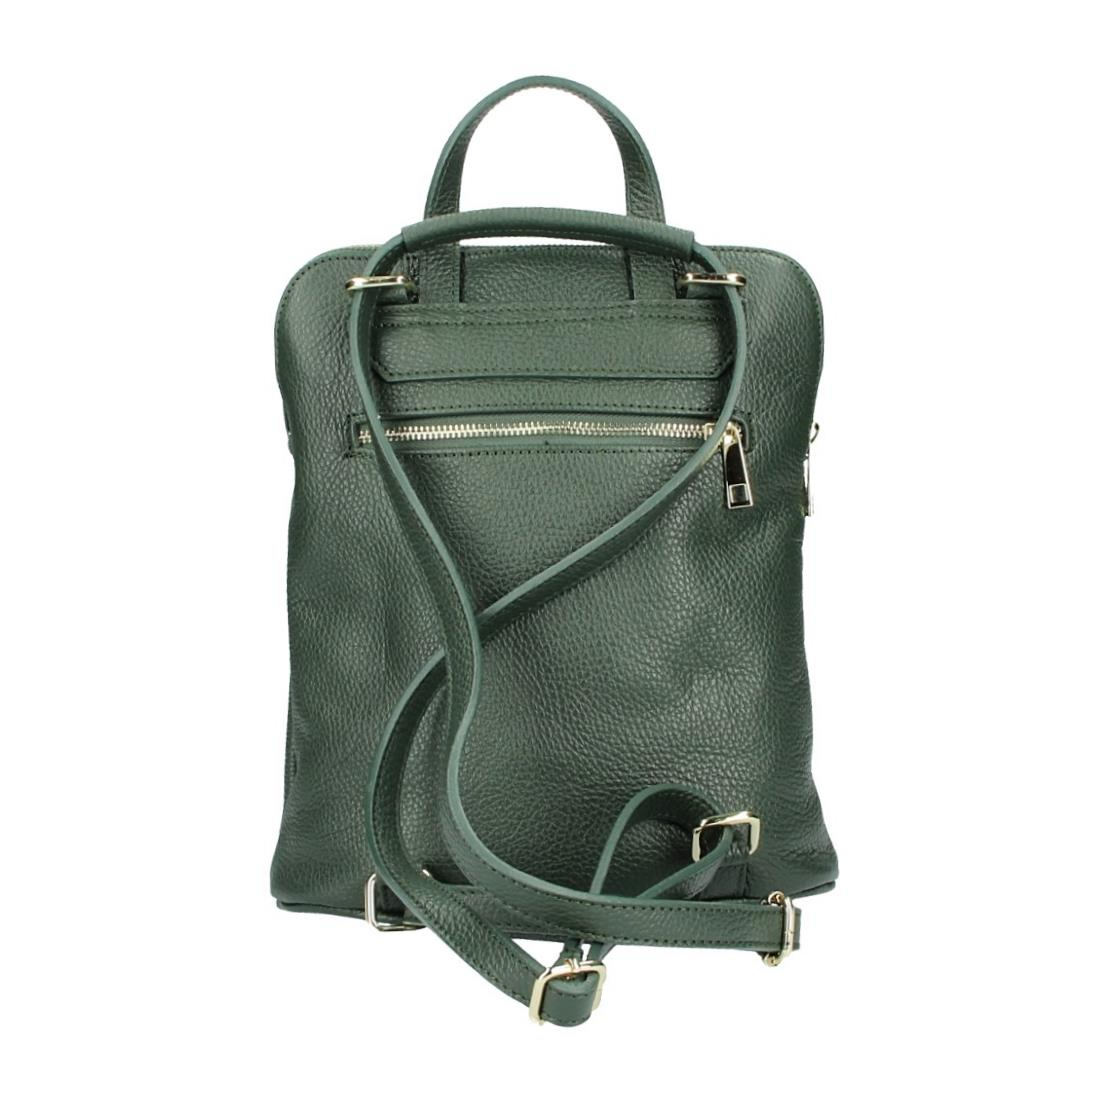 ITALy-DAMEN-LEDER-Reise-RUCKSACK-SchulterTasche-Shopper-Backpack-Ledertasche-BAG Indexbild 83